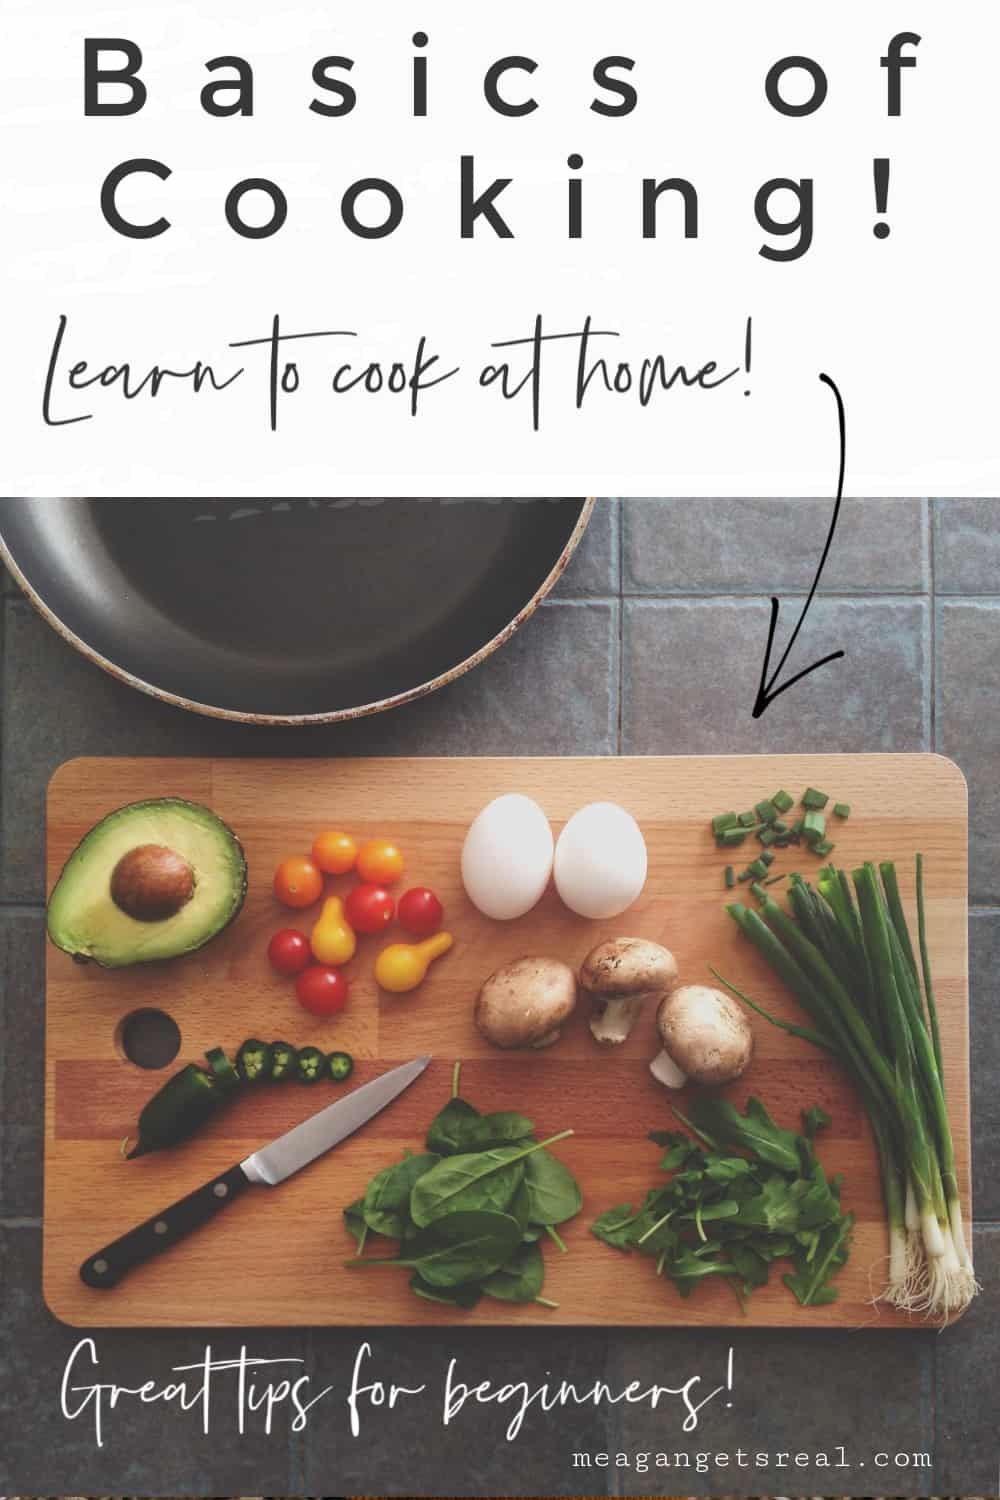 With this basics of cooking post you can learn simple tips to learn to cook from home. Learn to cook a variety of foods your family likes.